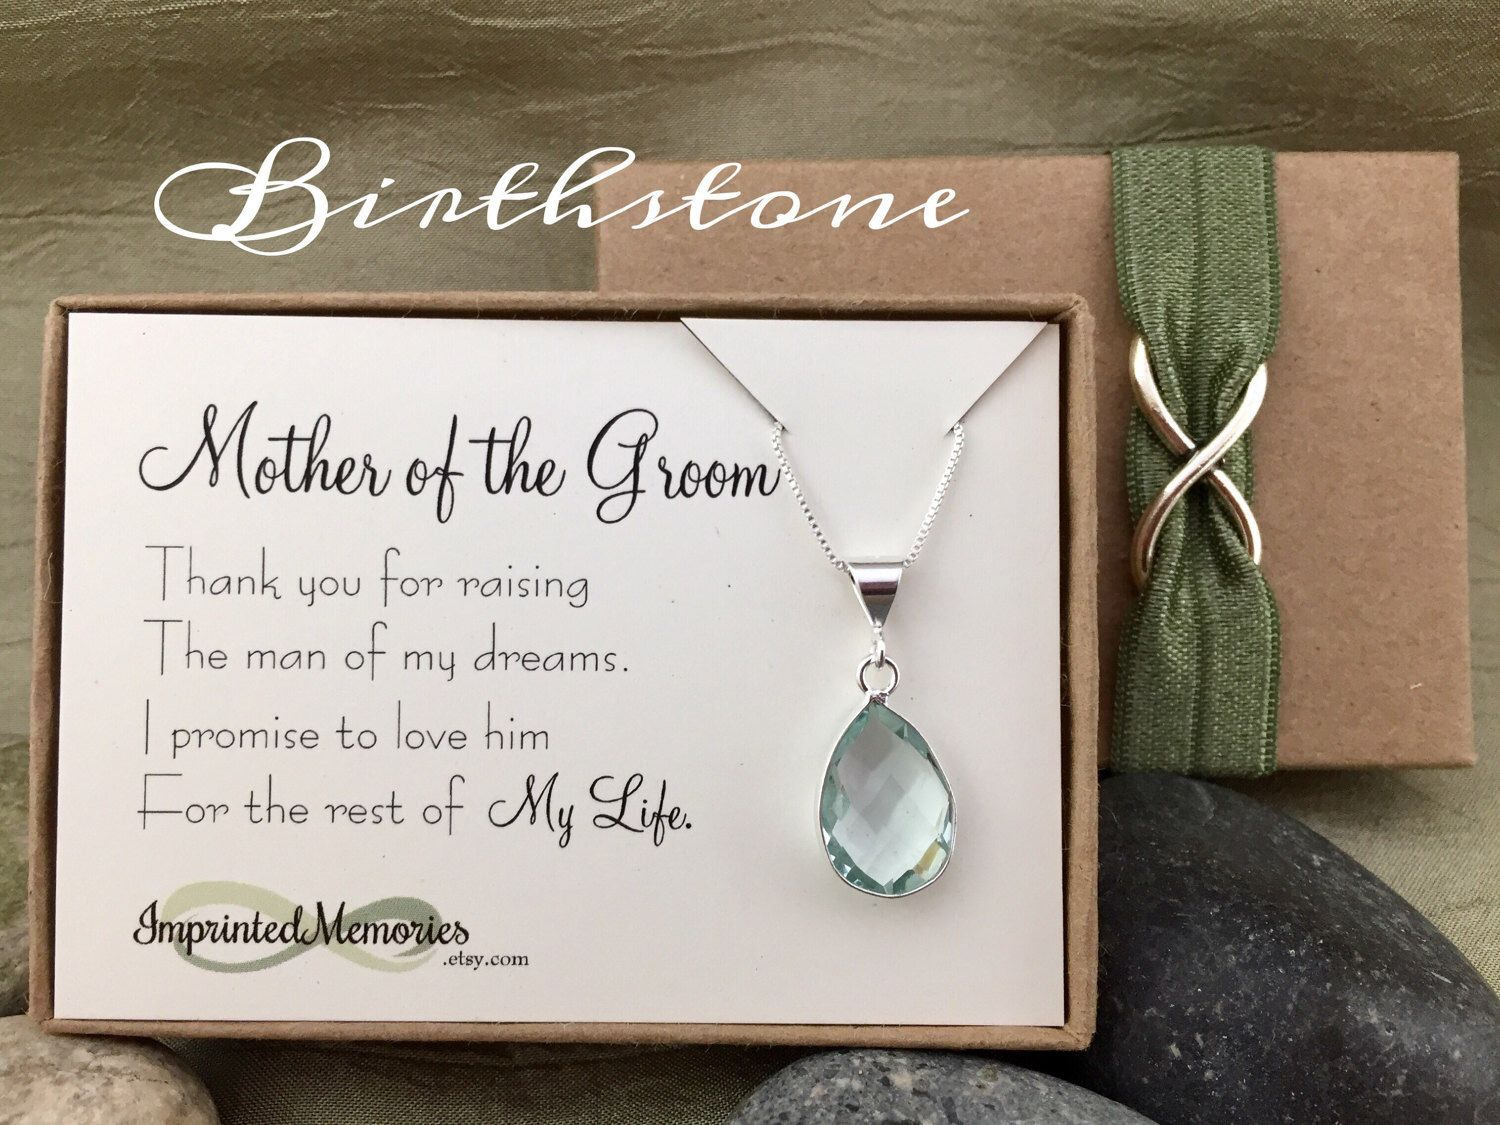 Mother of the Groom Gift from Bride - Thank you For Raising the Man of My Dreams - Birthstone Necklace Mother of the Groom Formal Jewelry by ImprintedMemories on Etsy https://www.etsy.com/listing/506896755/mother-of-the-groom-gift-from-bride